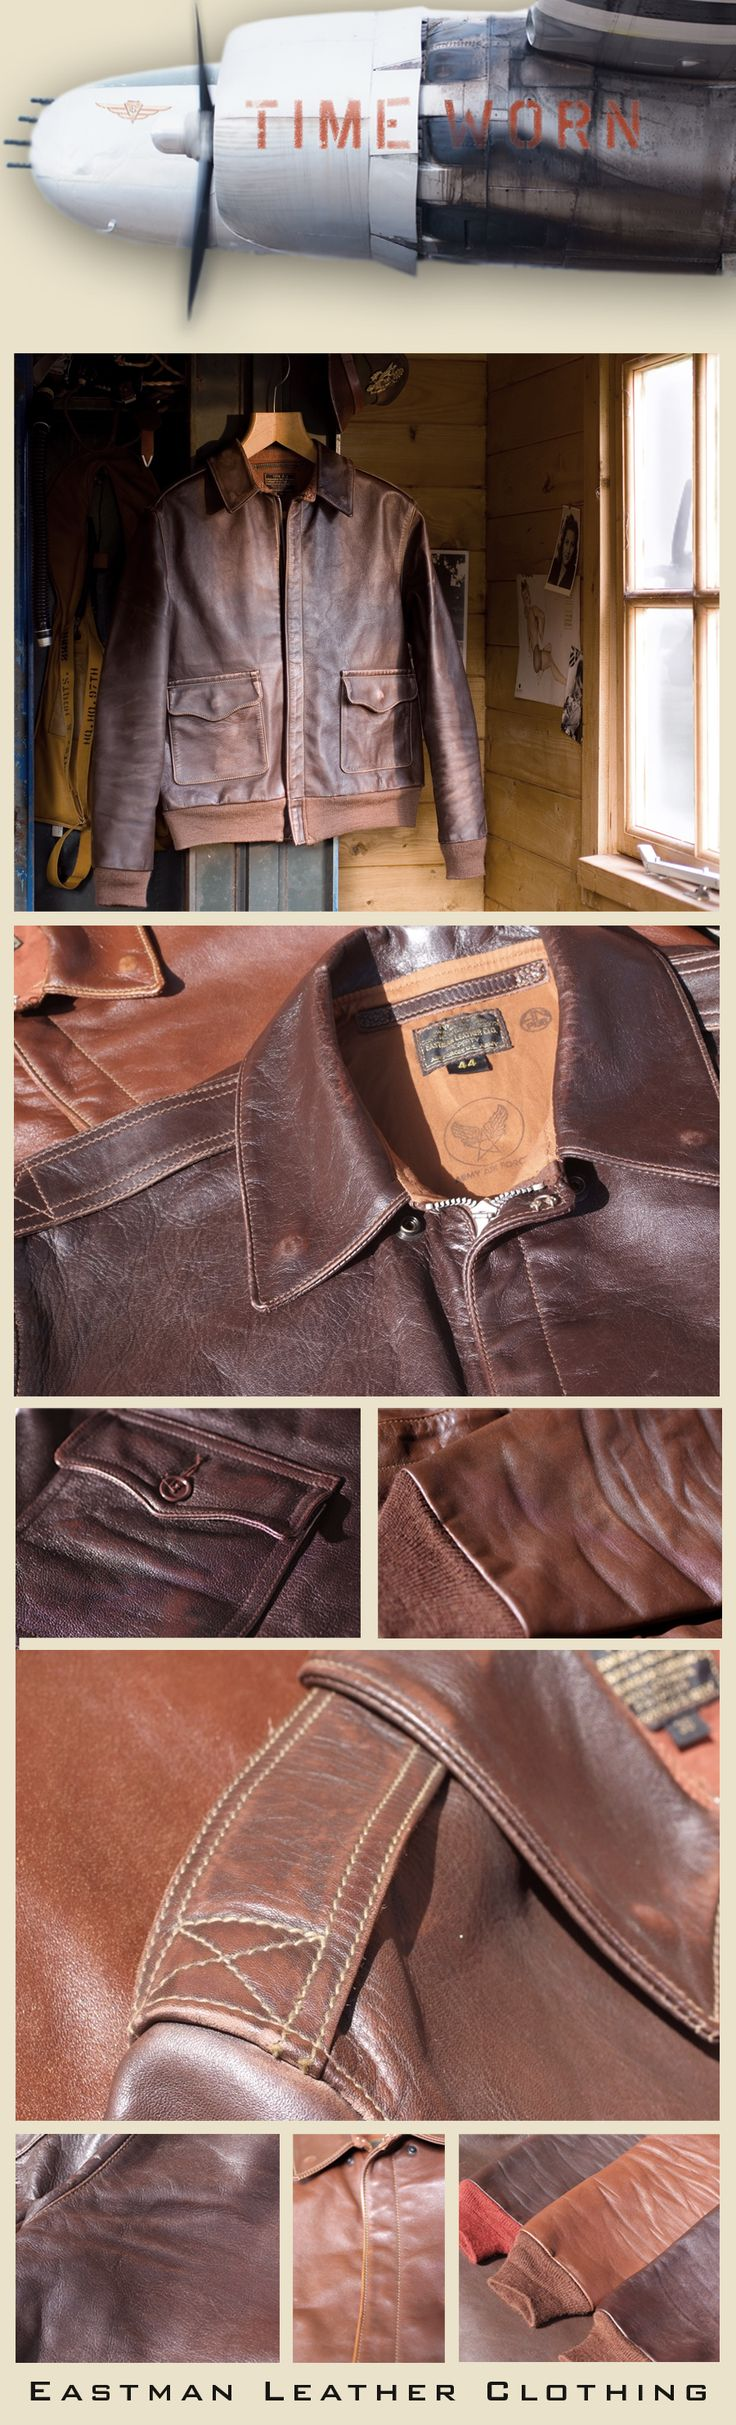 """Eastman Leather Clothing - USAAF A-2 Flight Jacket with """"Time Worn"""" Aging"""